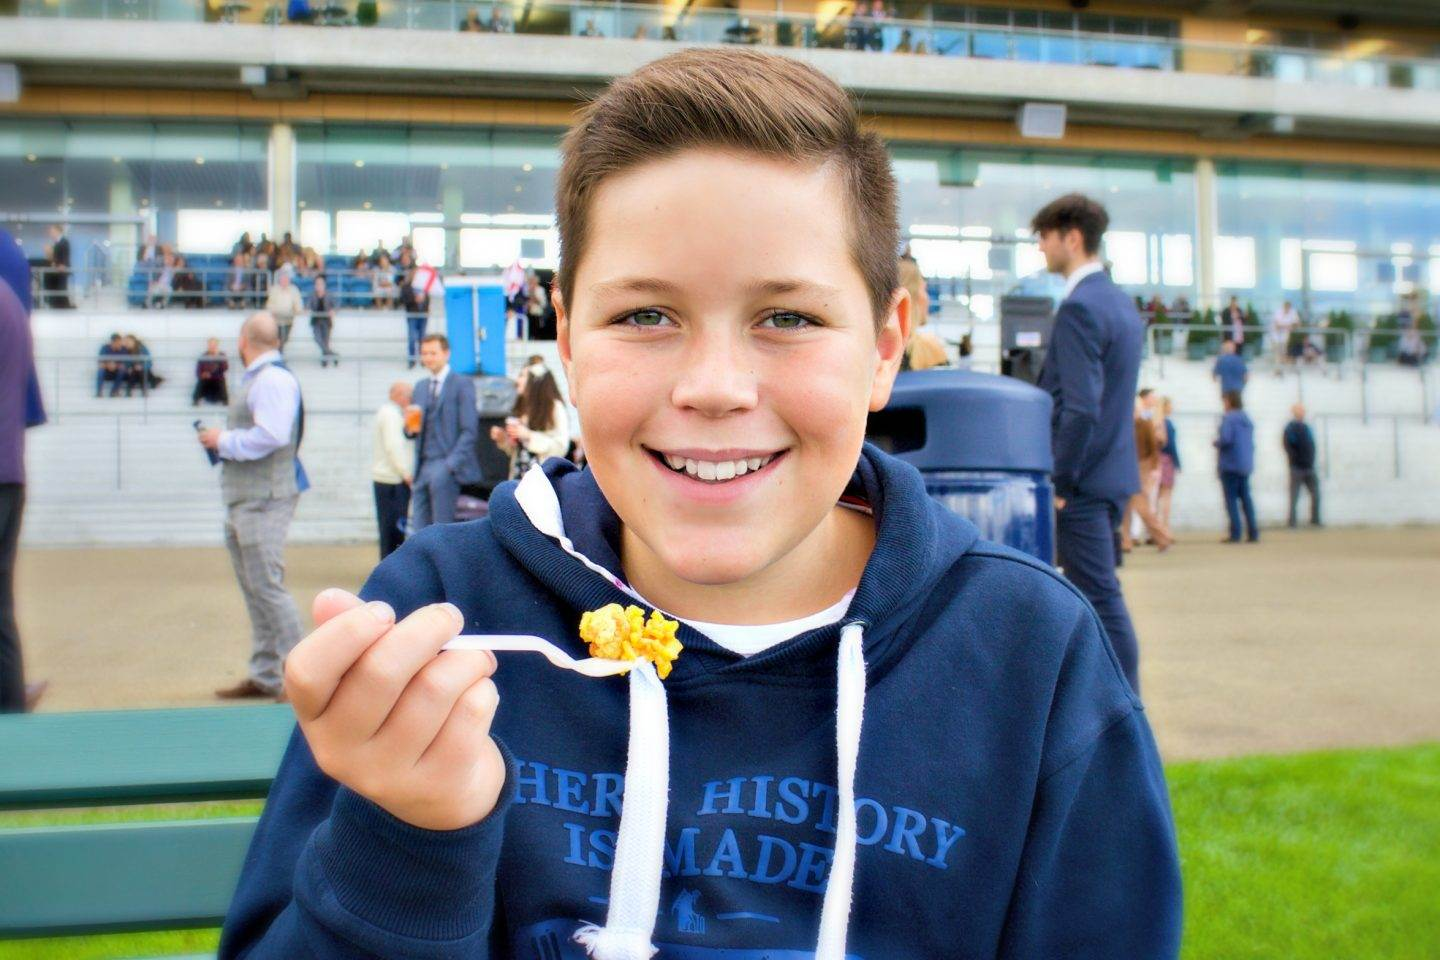 Festival of Food and Wine, Ascot Racecourse